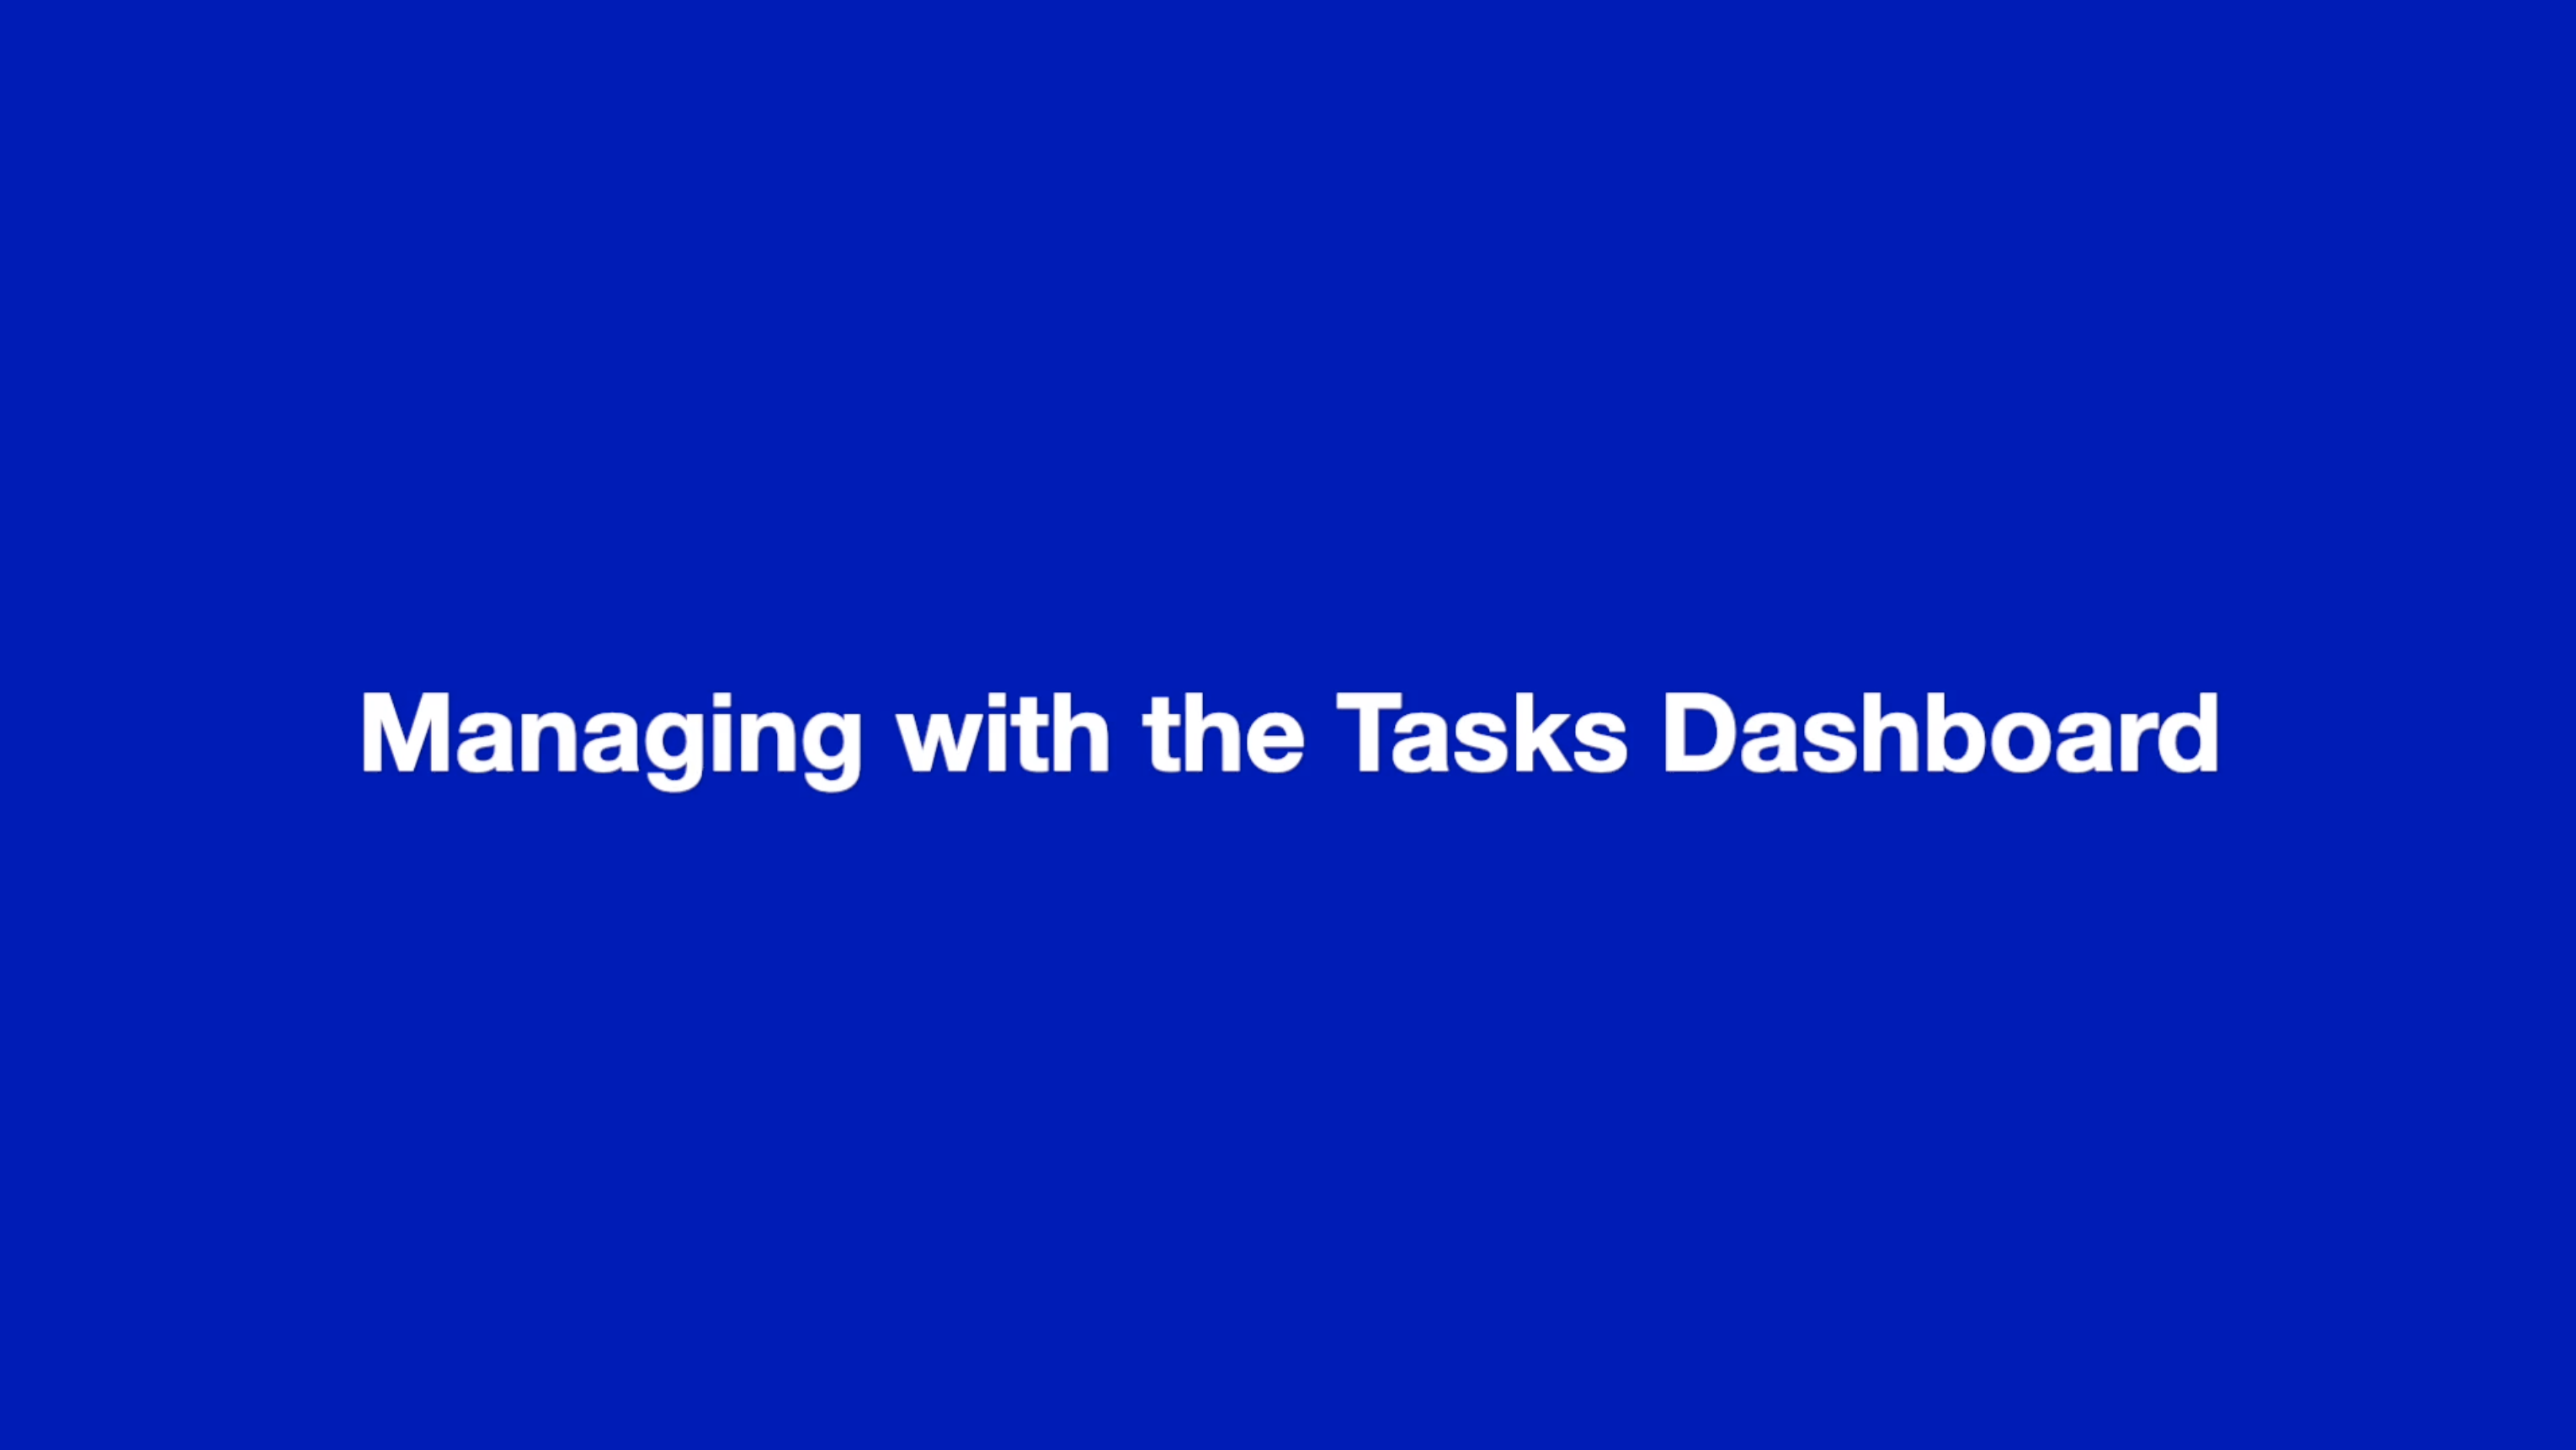 Managing with the Tasks Dashboard thumbnail